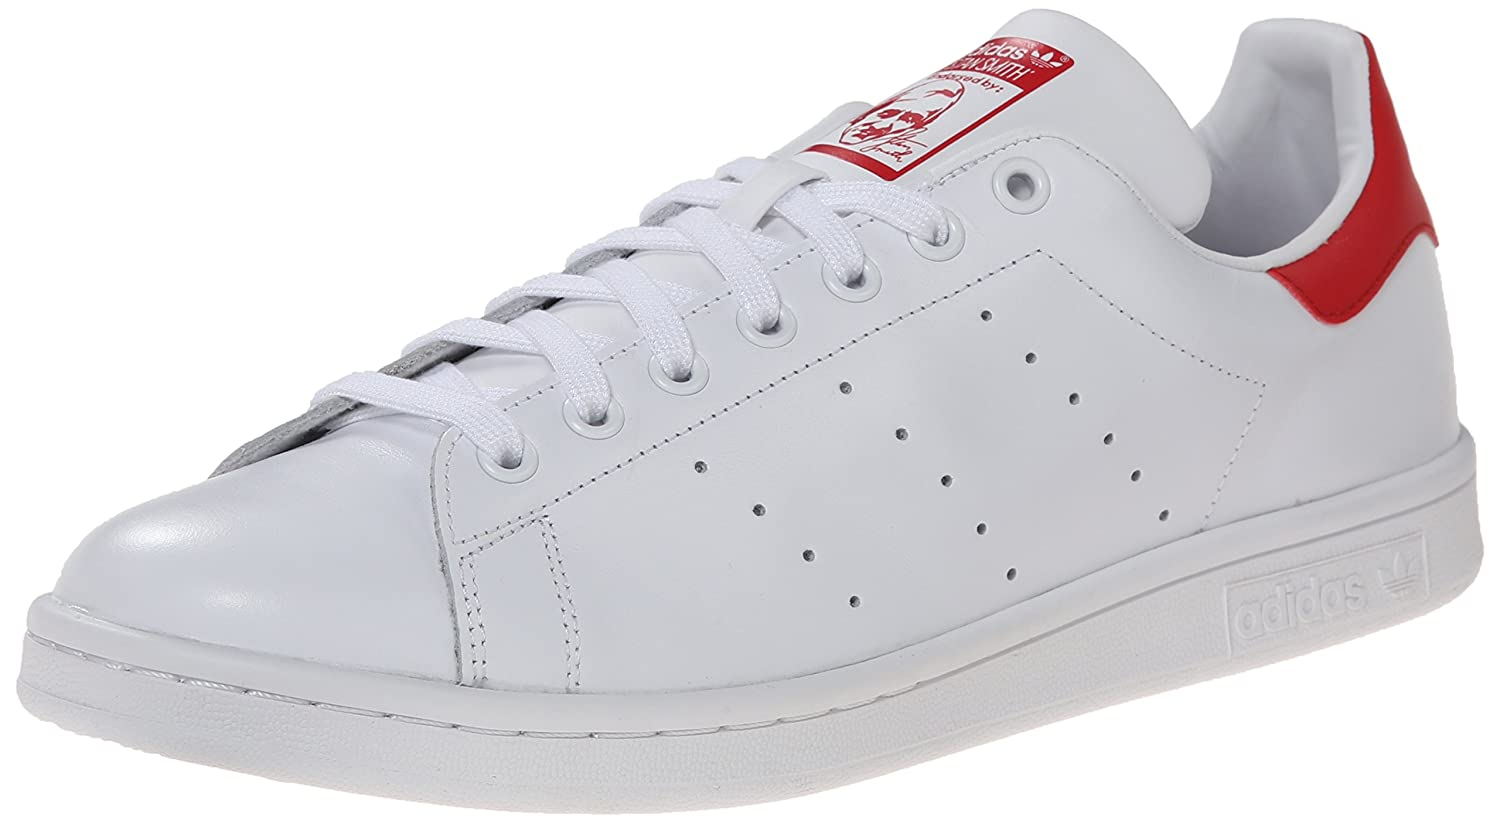 Adidas Stan Smith, Chaussures Homme (Running 42 EU|Blanc (Running Homme White Ftw/Collegiate Red) f44ed1